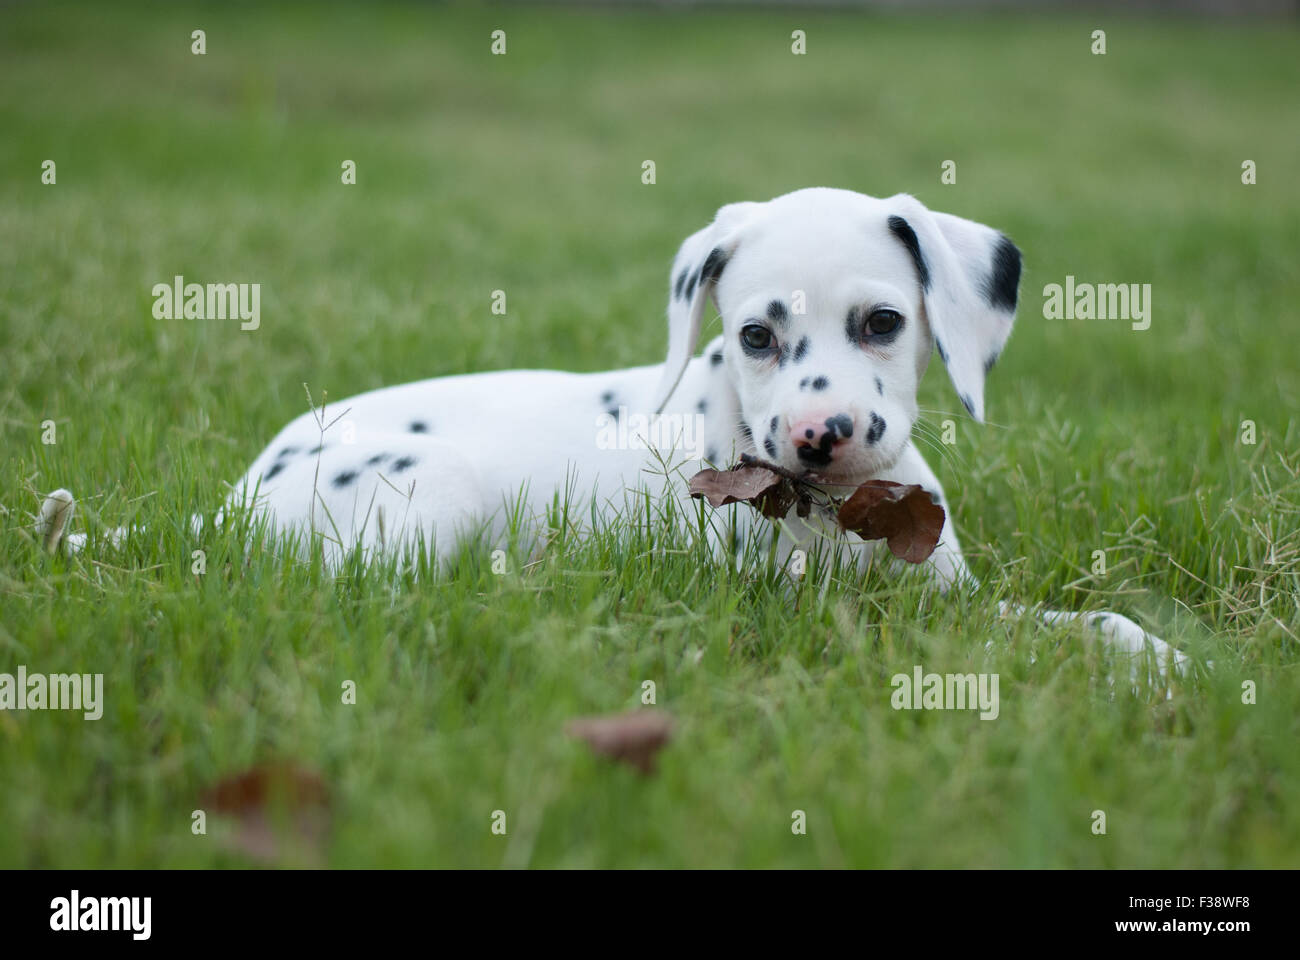 Pure Bred Dalmatian Puppy playing in the grass at 8 weeks old - Stock Image